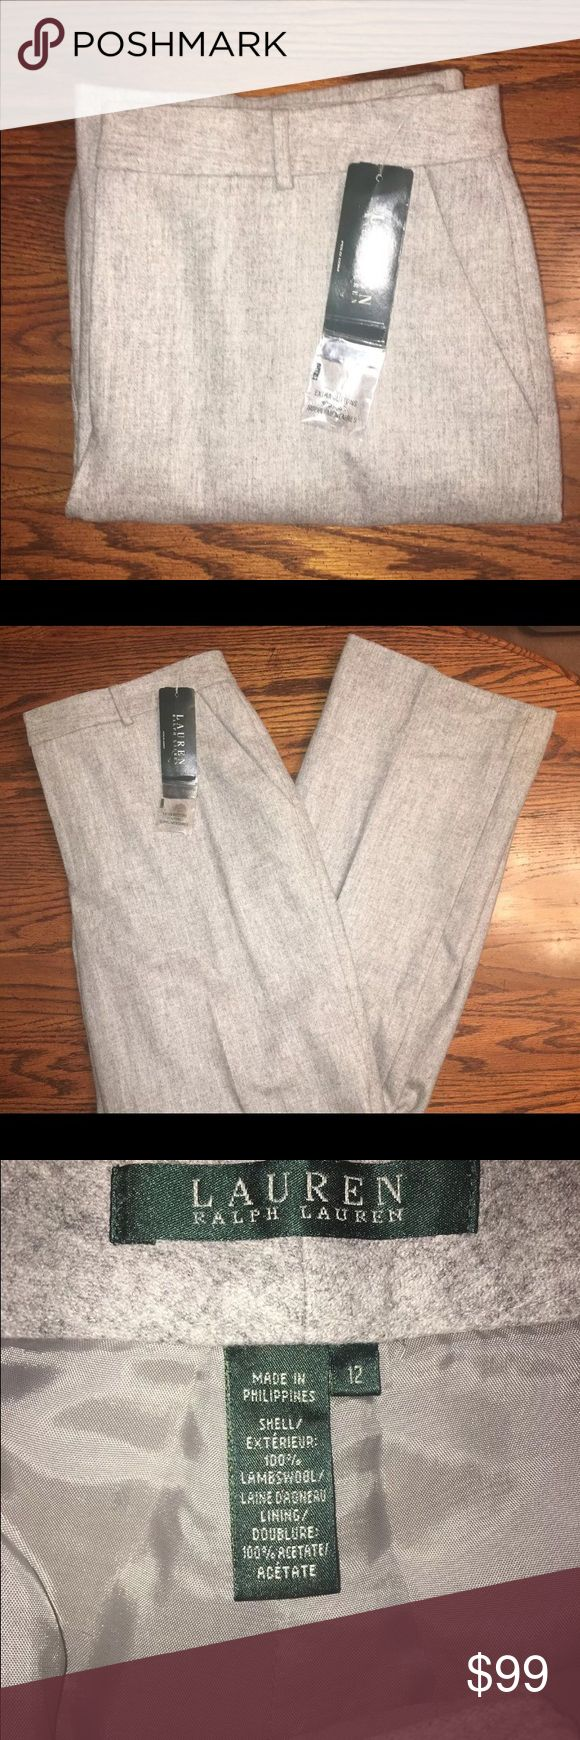 Lauren Ralph Lauren women's pants size 12 You are looking at a brand new with tags attached pair off Lauren Ralph Lauren women's pants in size 12, color grey. Lauren Ralph Lauren Pants Trousers